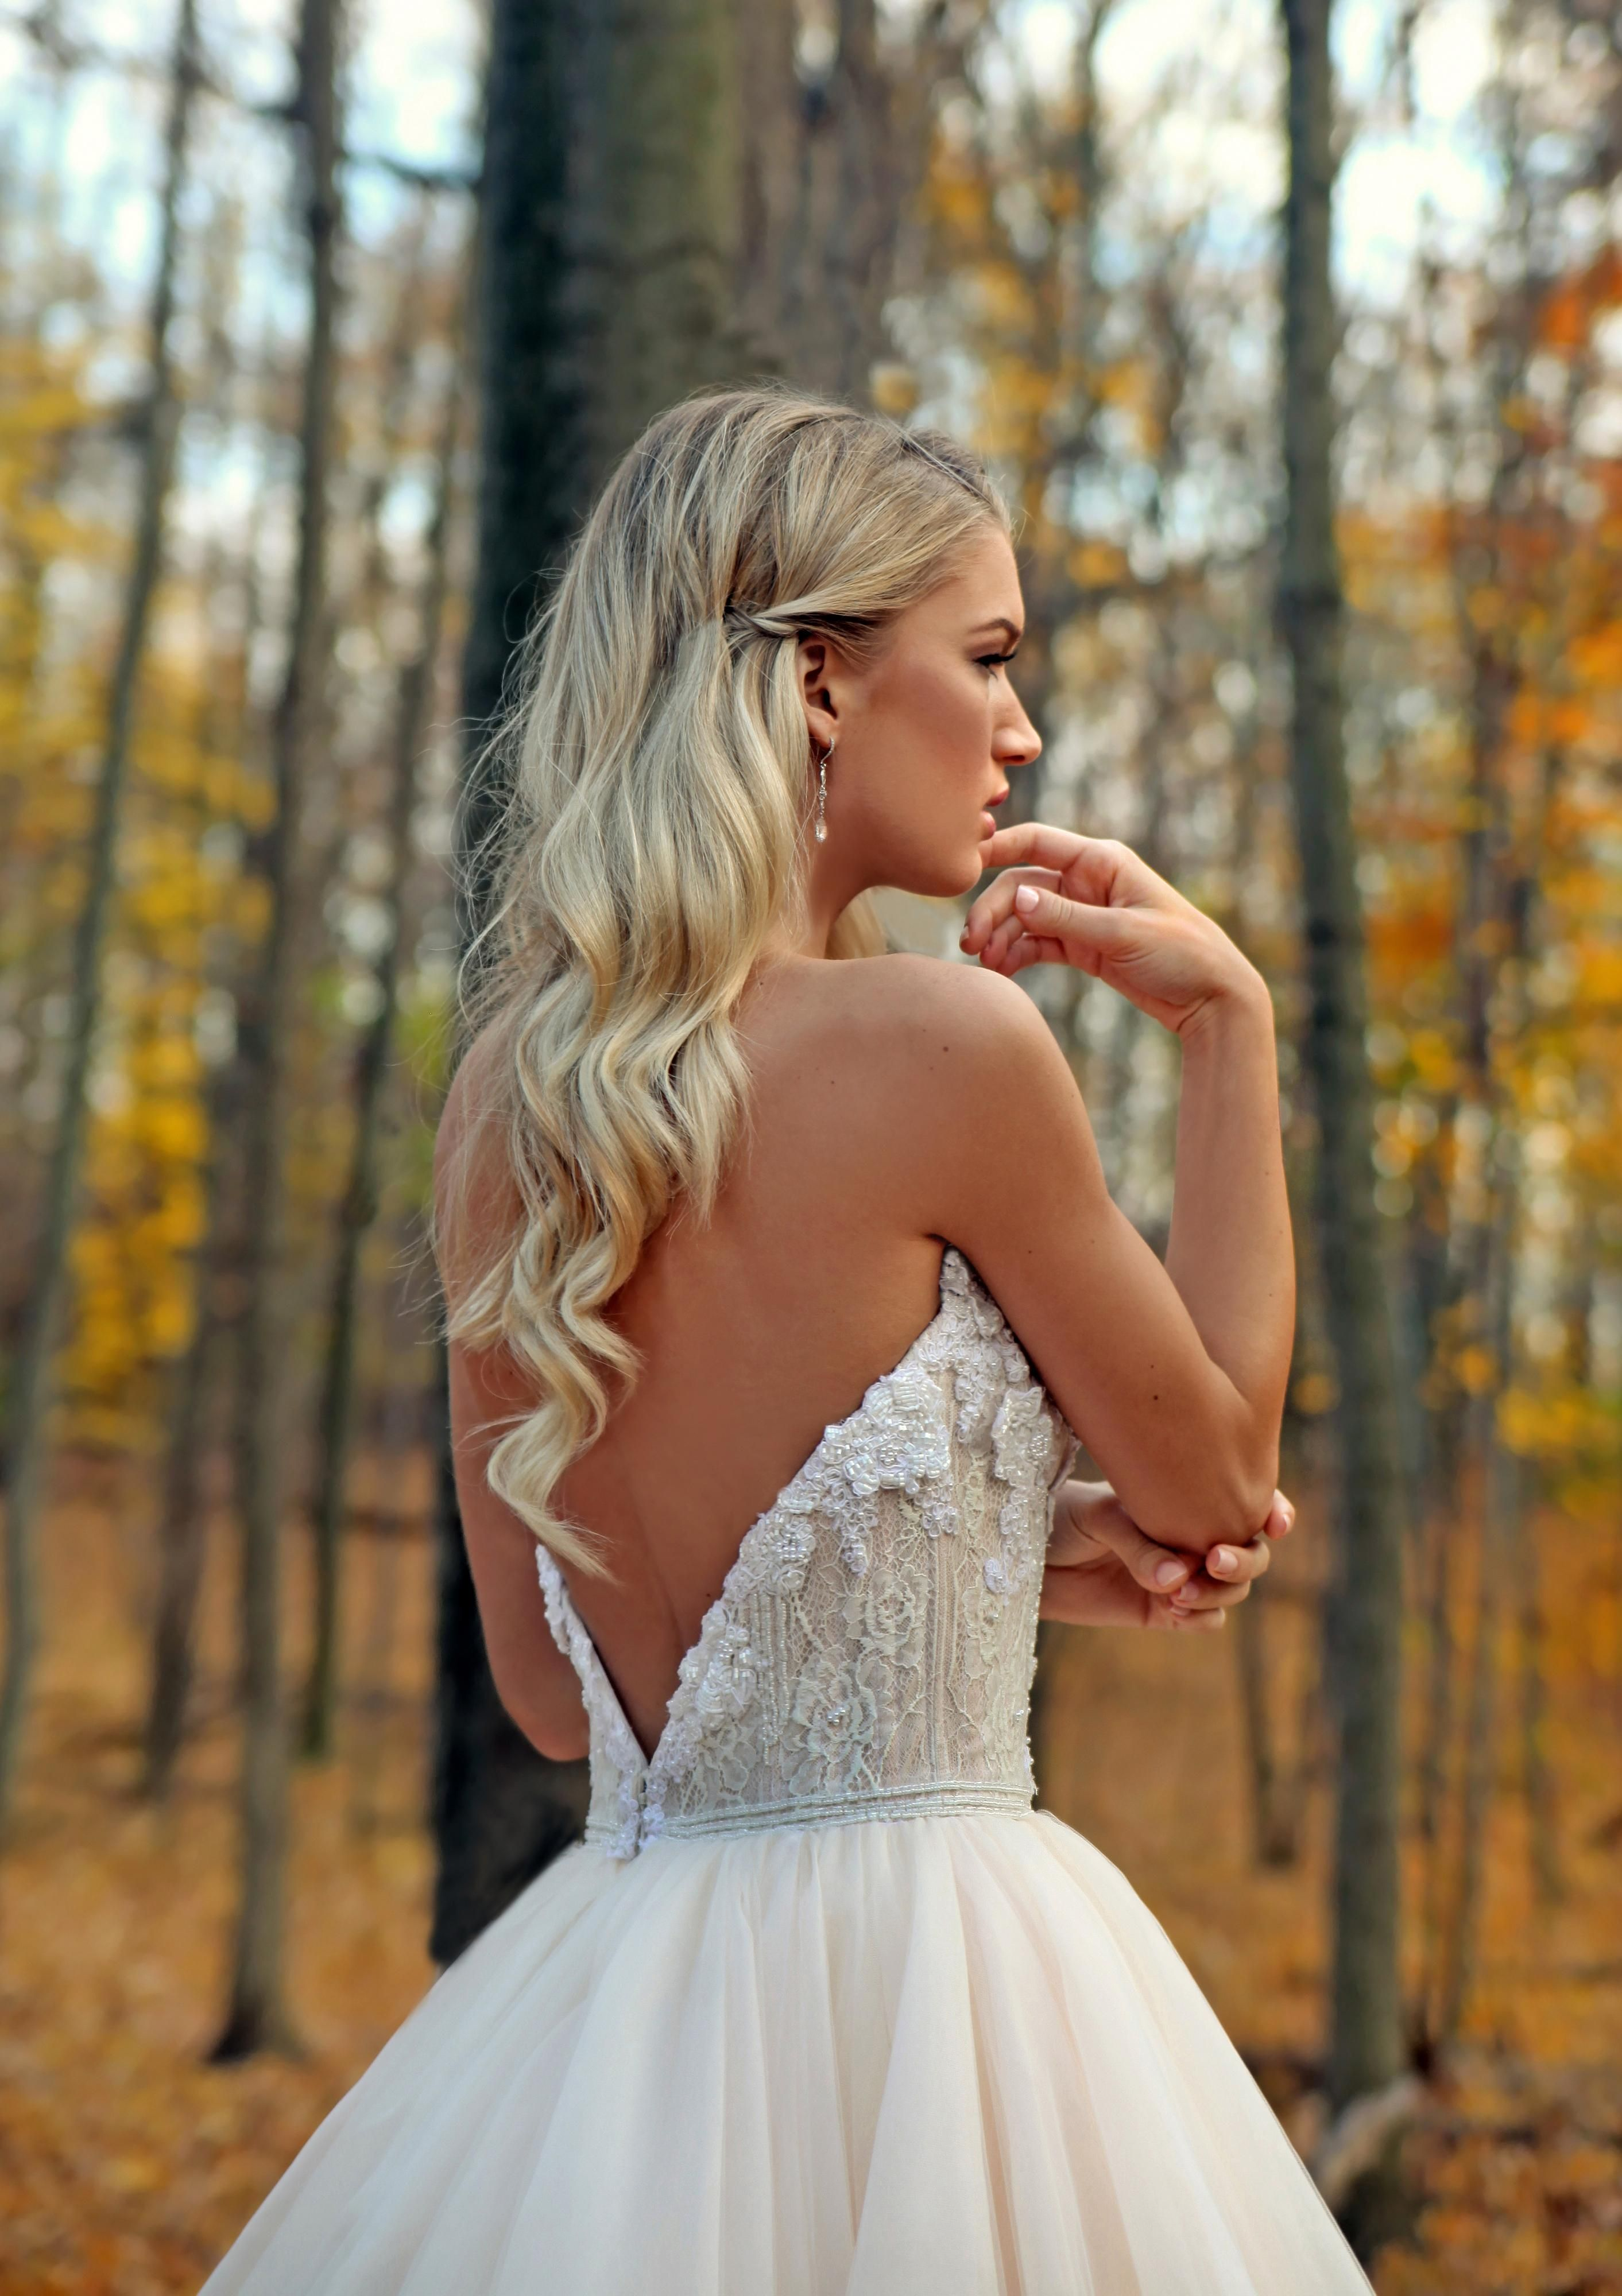 pin by maria's for orabella on marisa bridal | pinterest | wedding